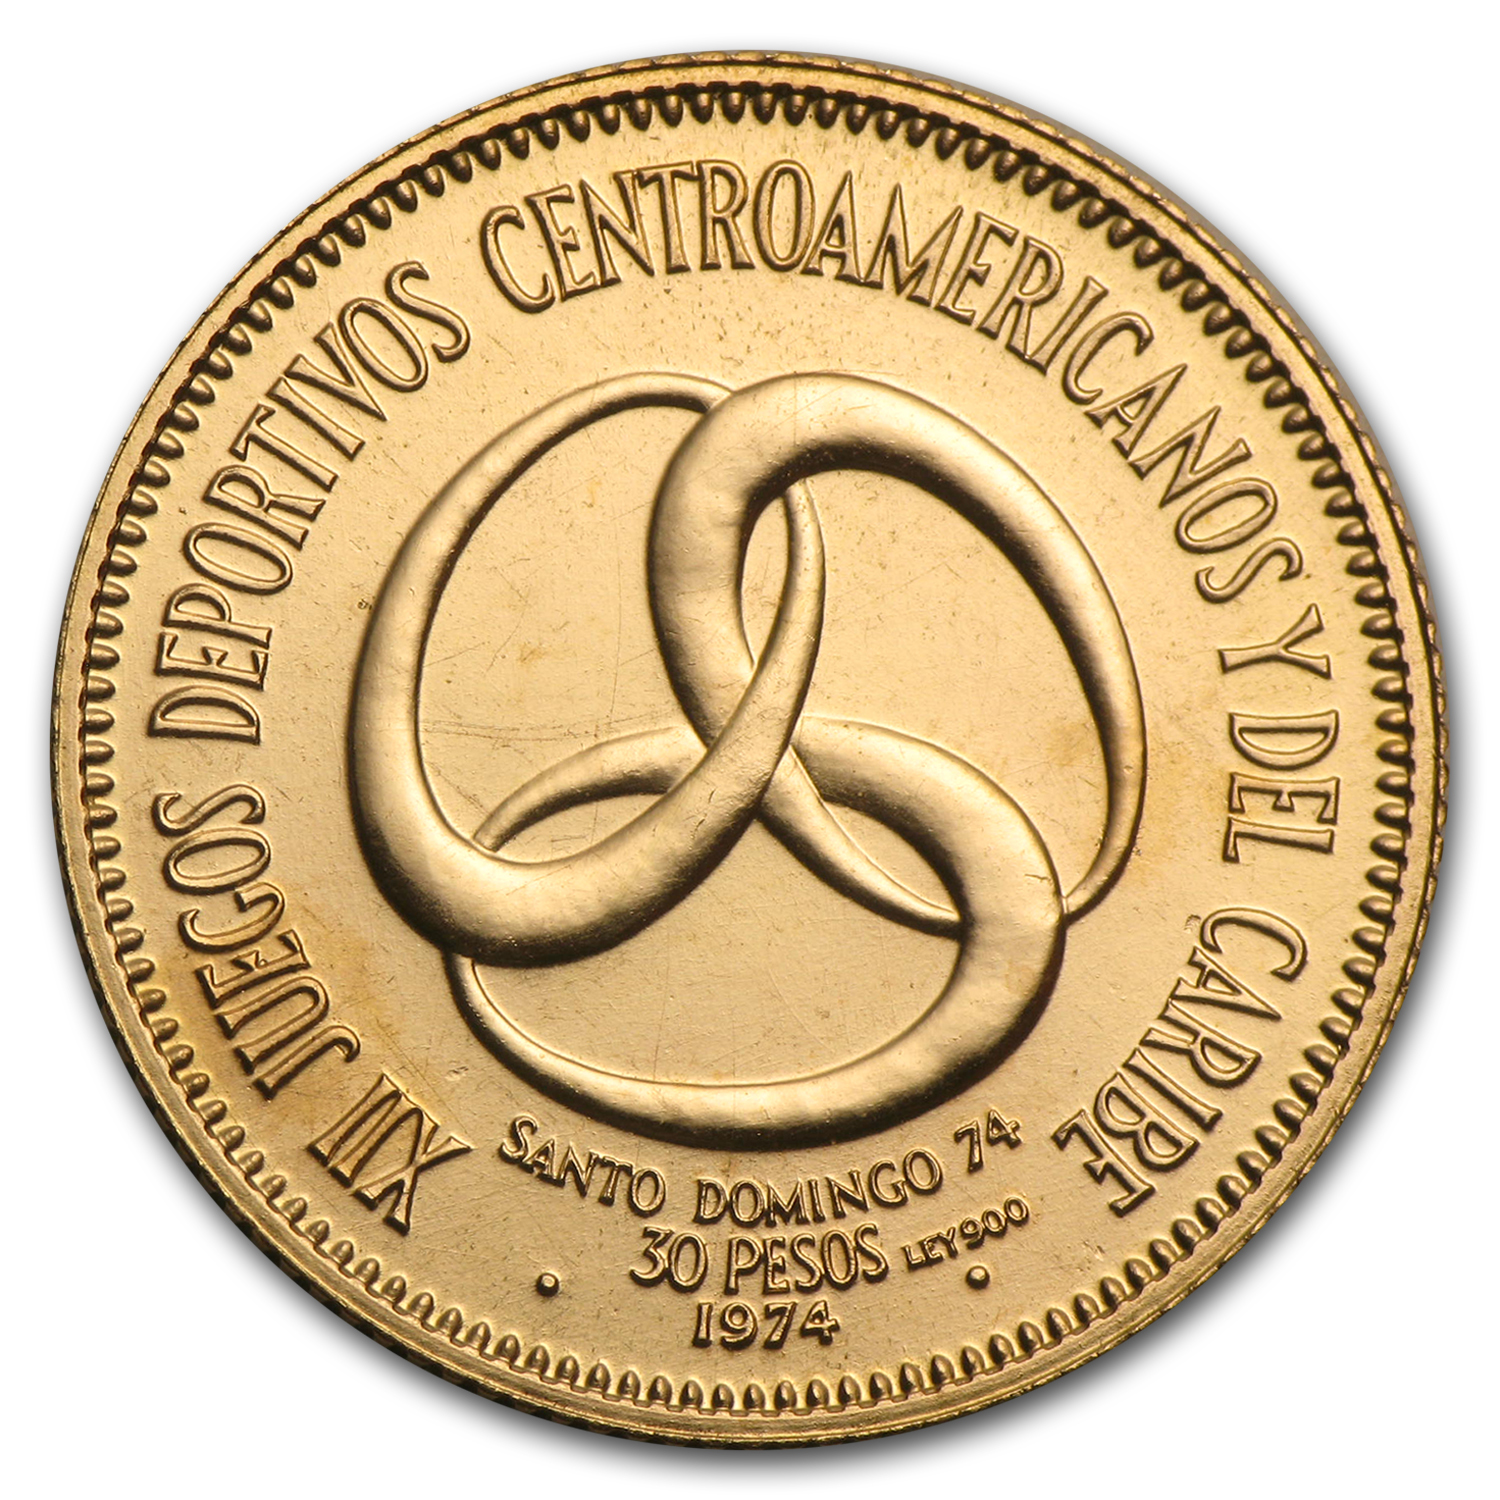 Dominican Republic 1974 30 Pesos Gold Coin BU - AGW .3385